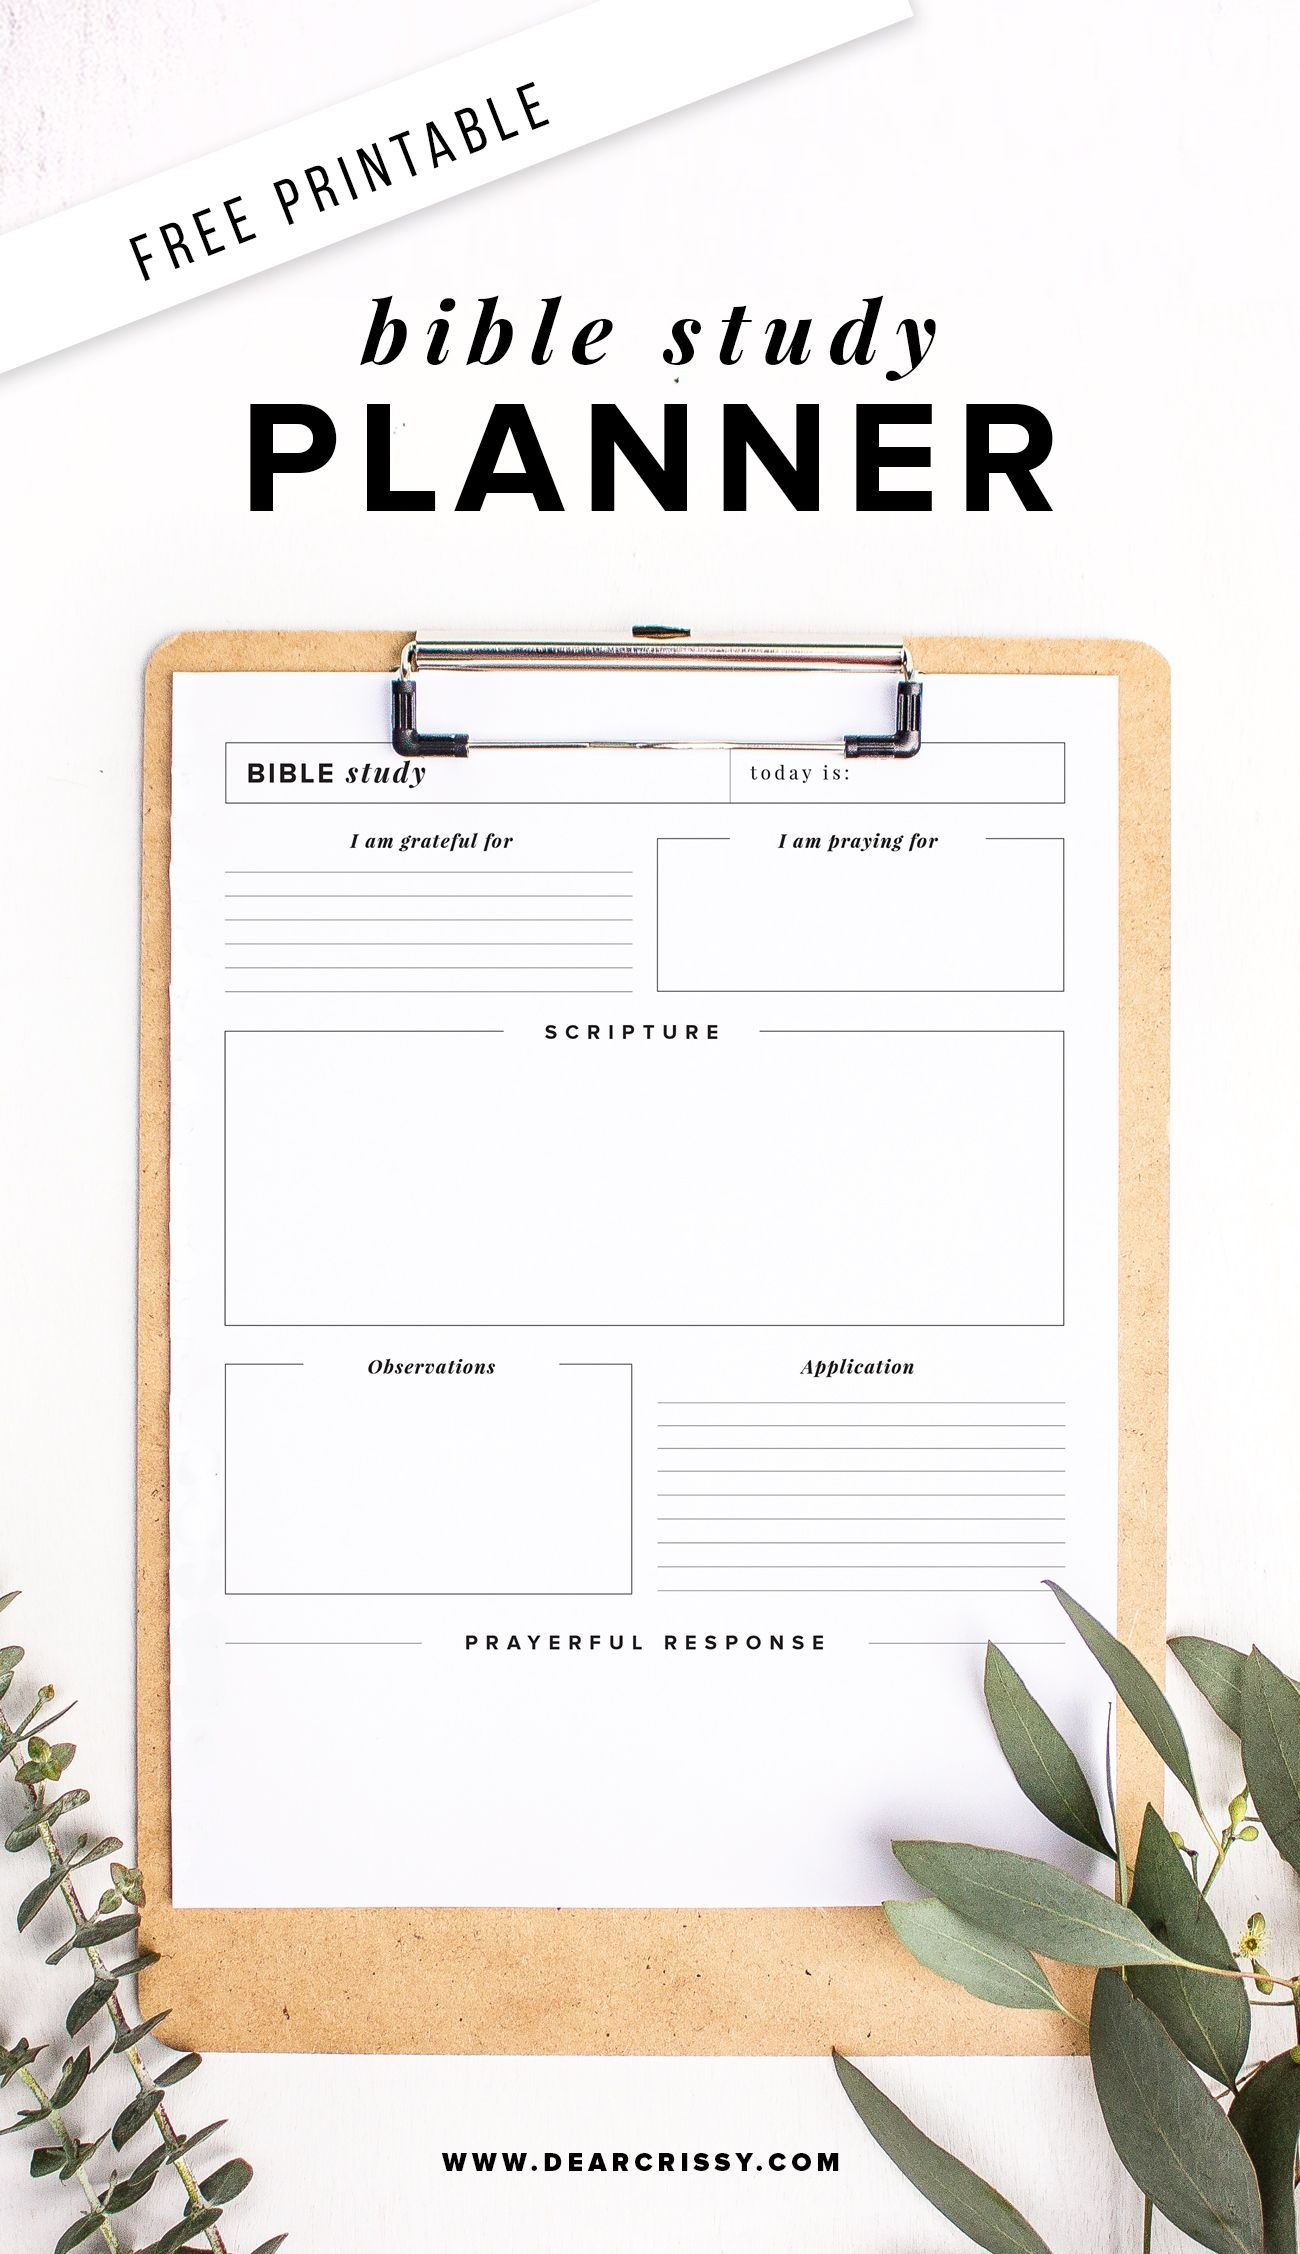 Free Printable Bible Study Planner - Soap Method Bible Study - Free Printable Bible Study Guides